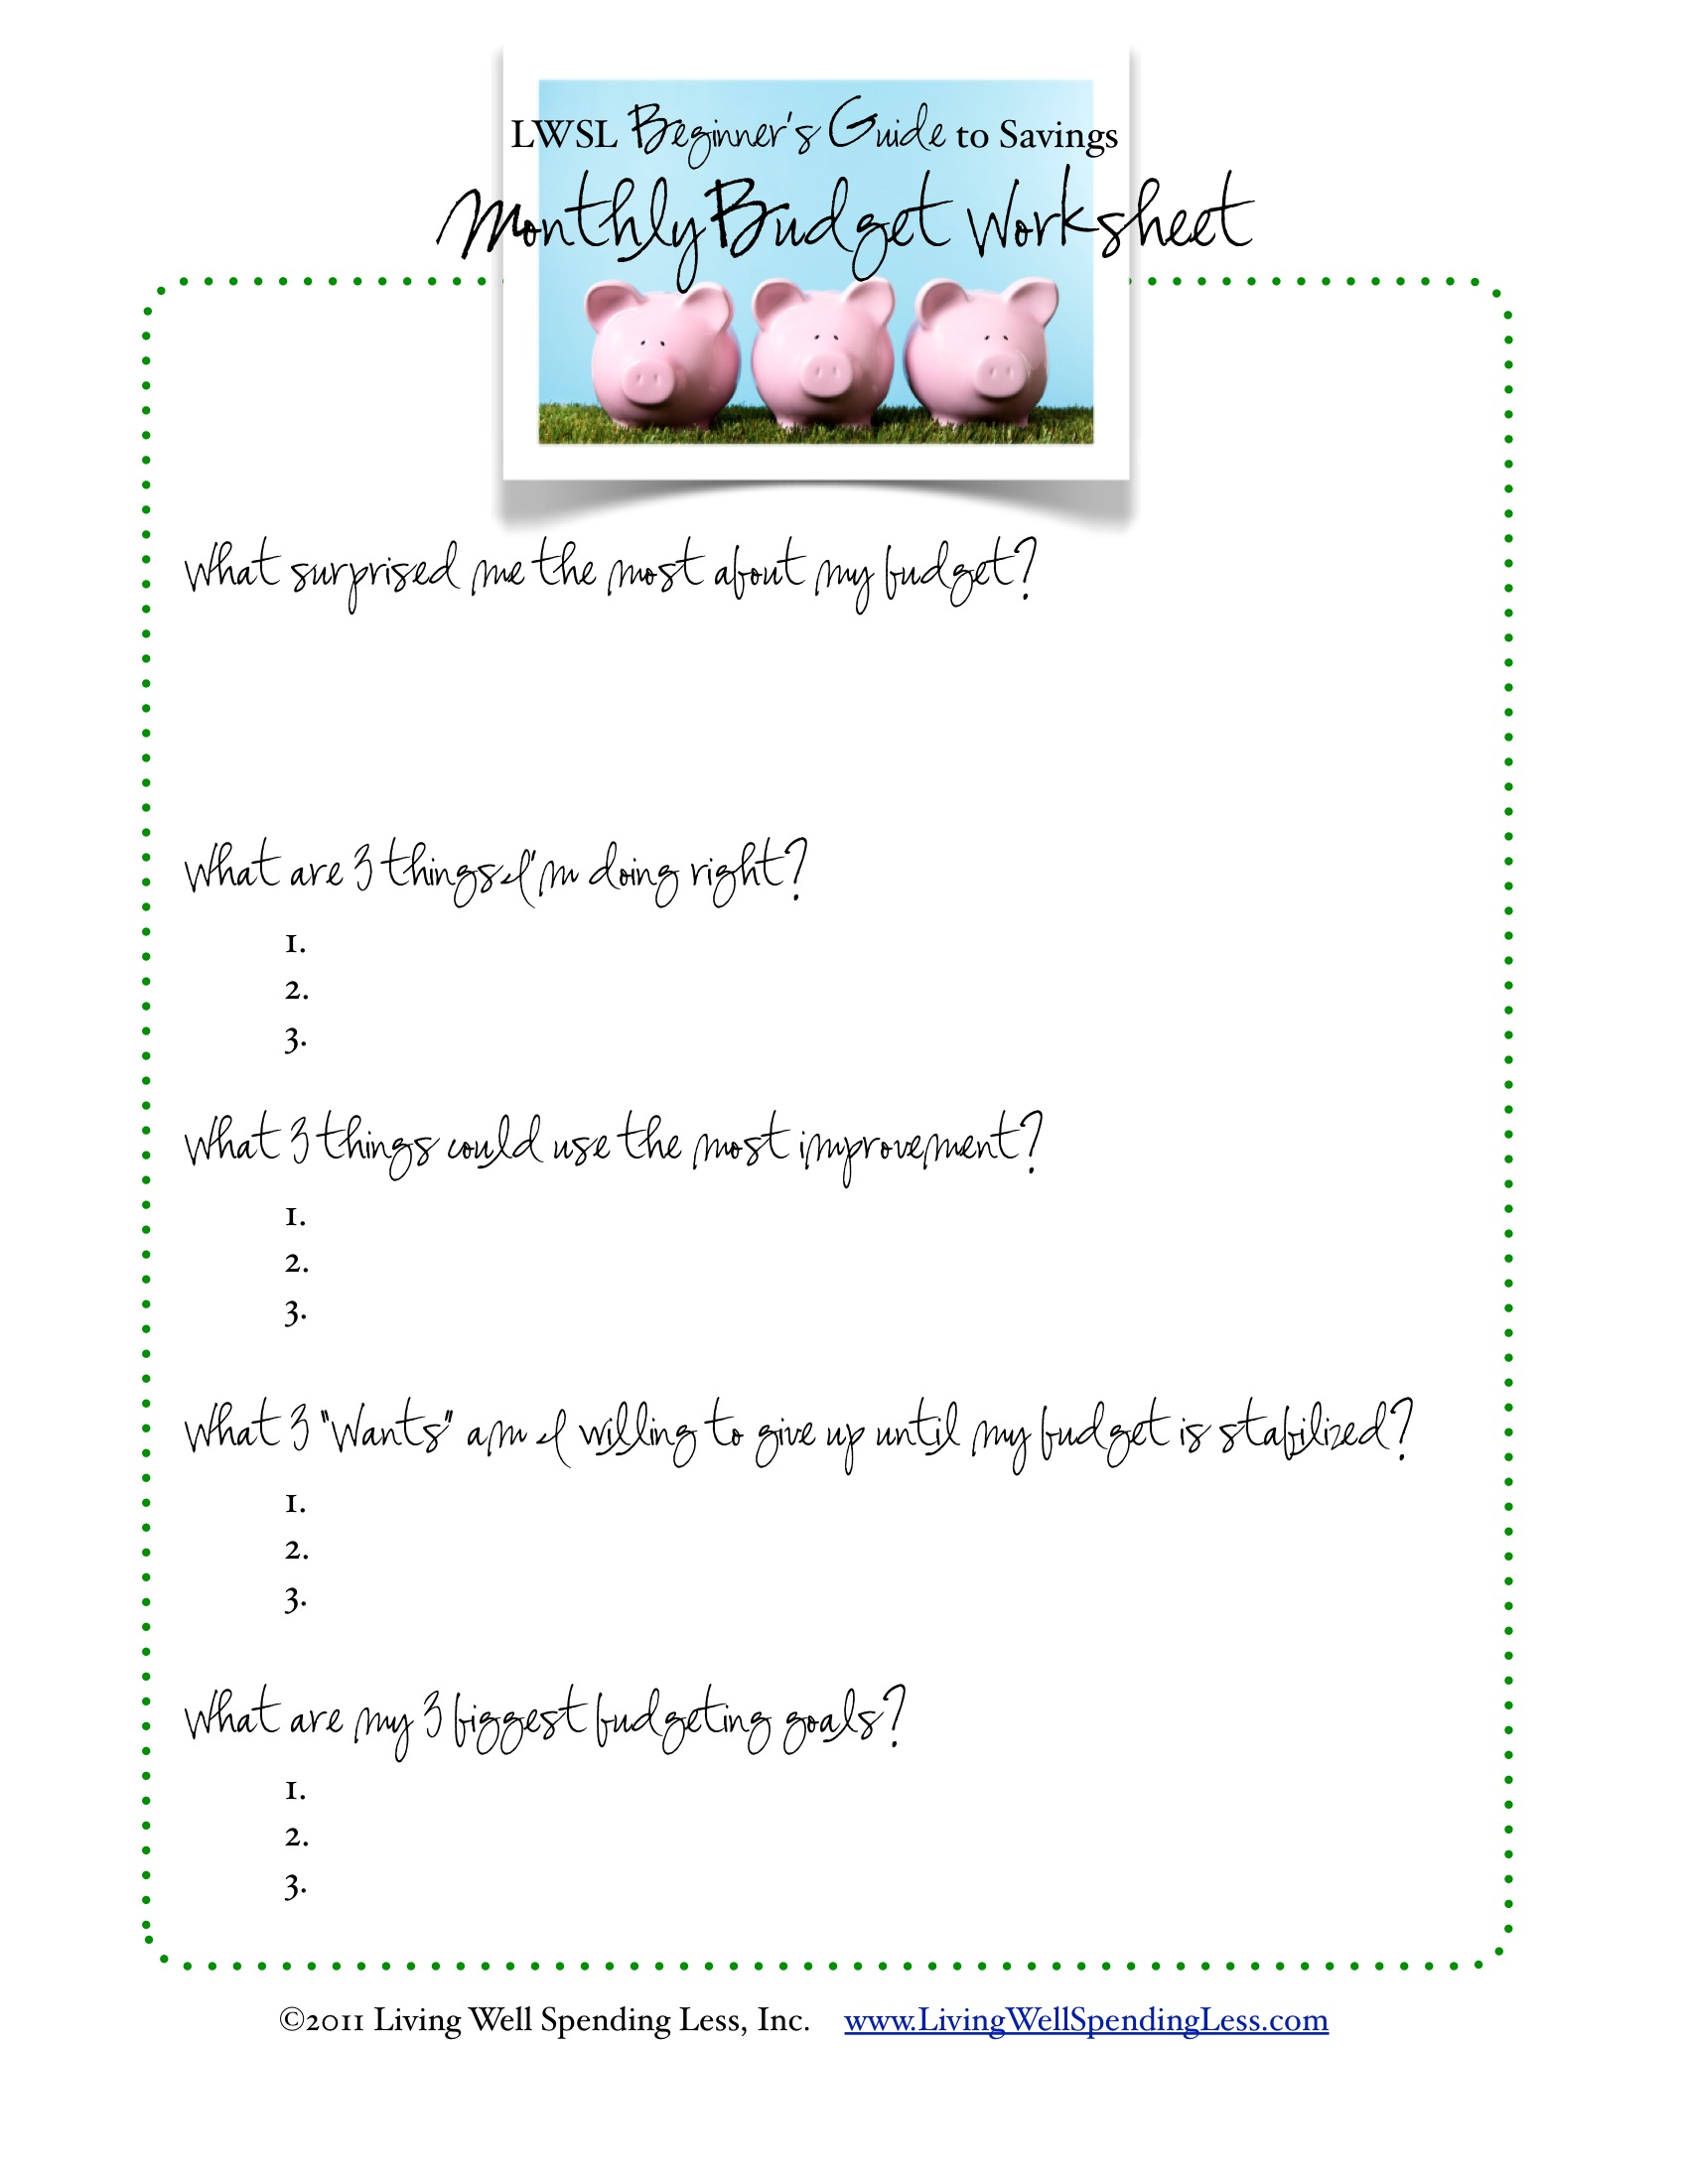 Printables Self Control Worksheets Gotaplet Thousands Of